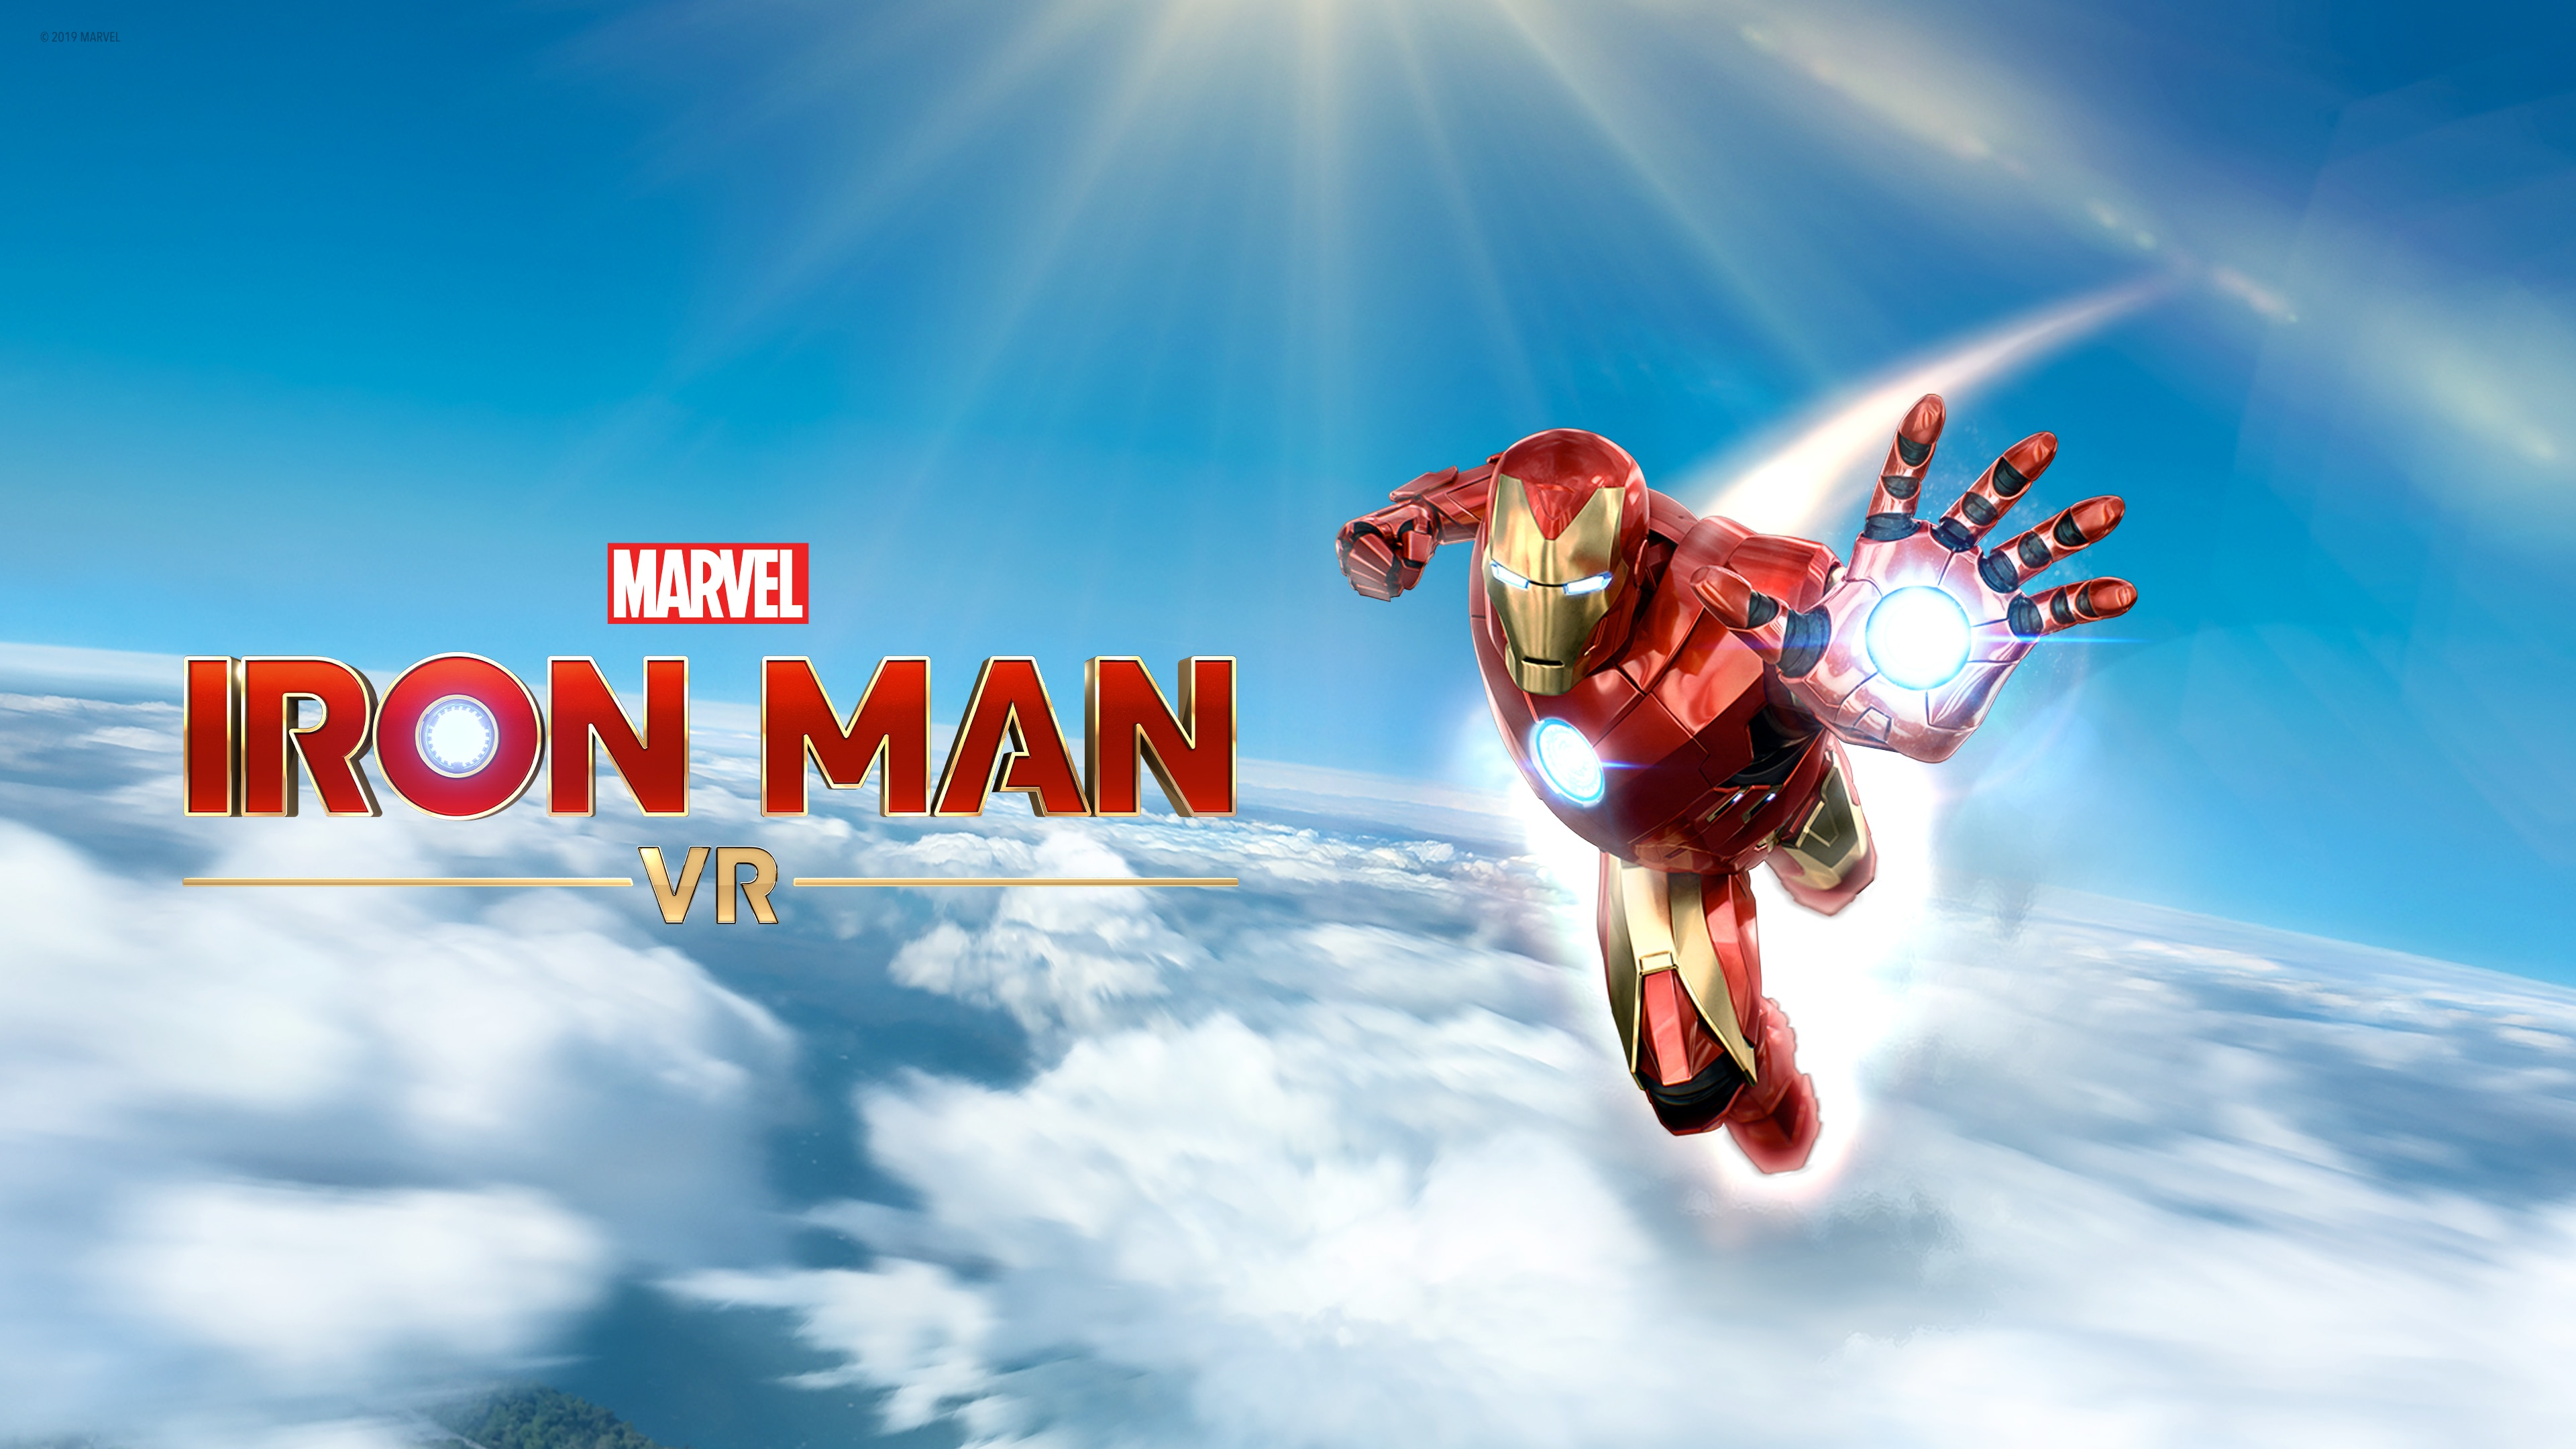 Marvel's Iron Man VR: Digital Deluxe Edition